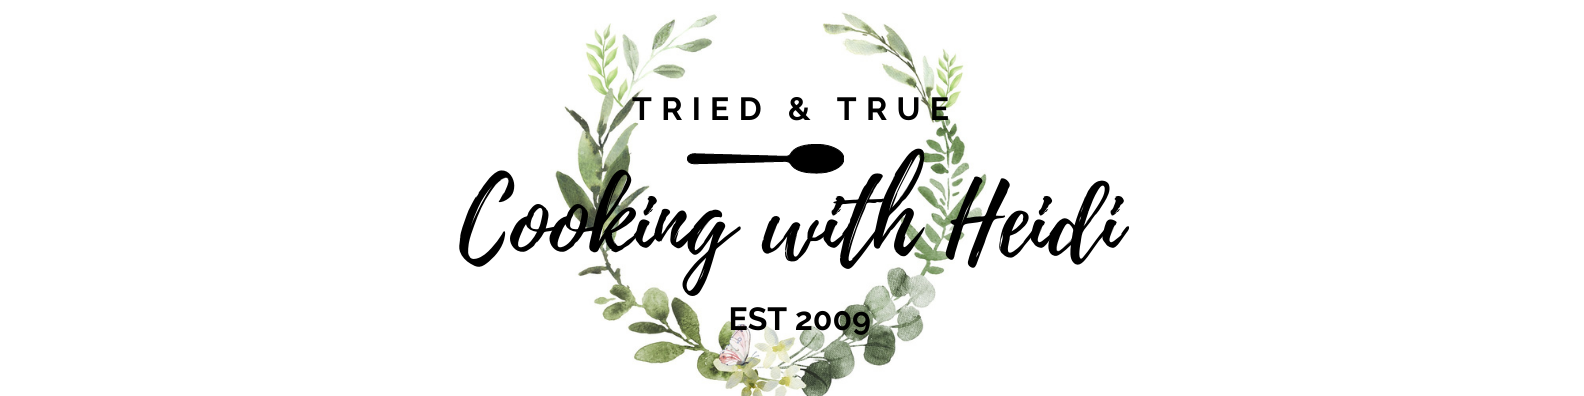 Tried-and-True cooking with Heidi